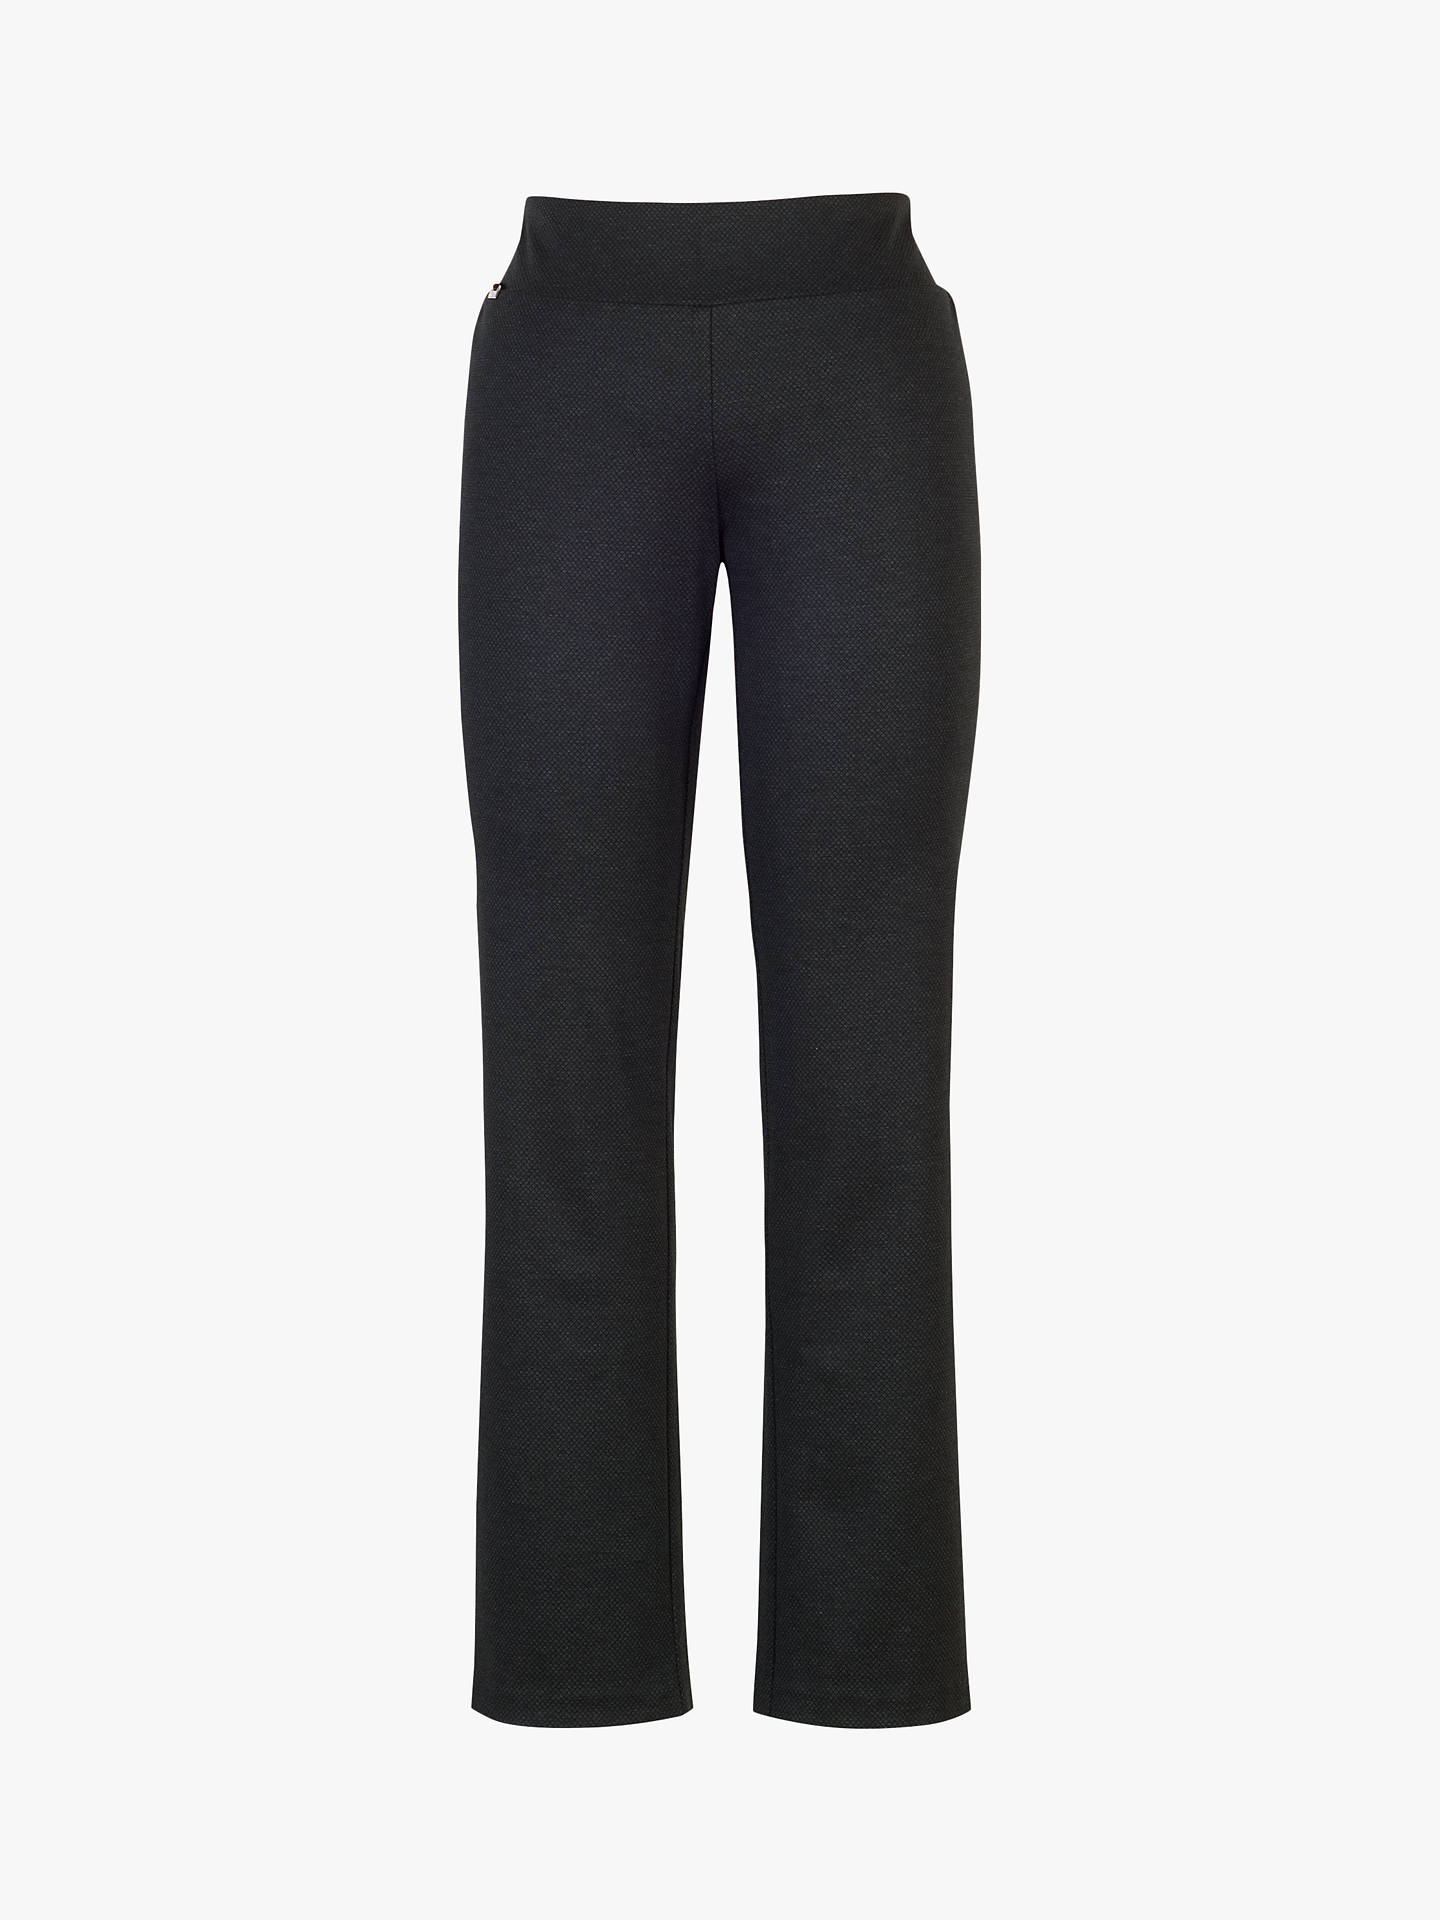 BuyChesca Diamond Check Trousers, Black/Charcoal, 14 Online at johnlewis.com